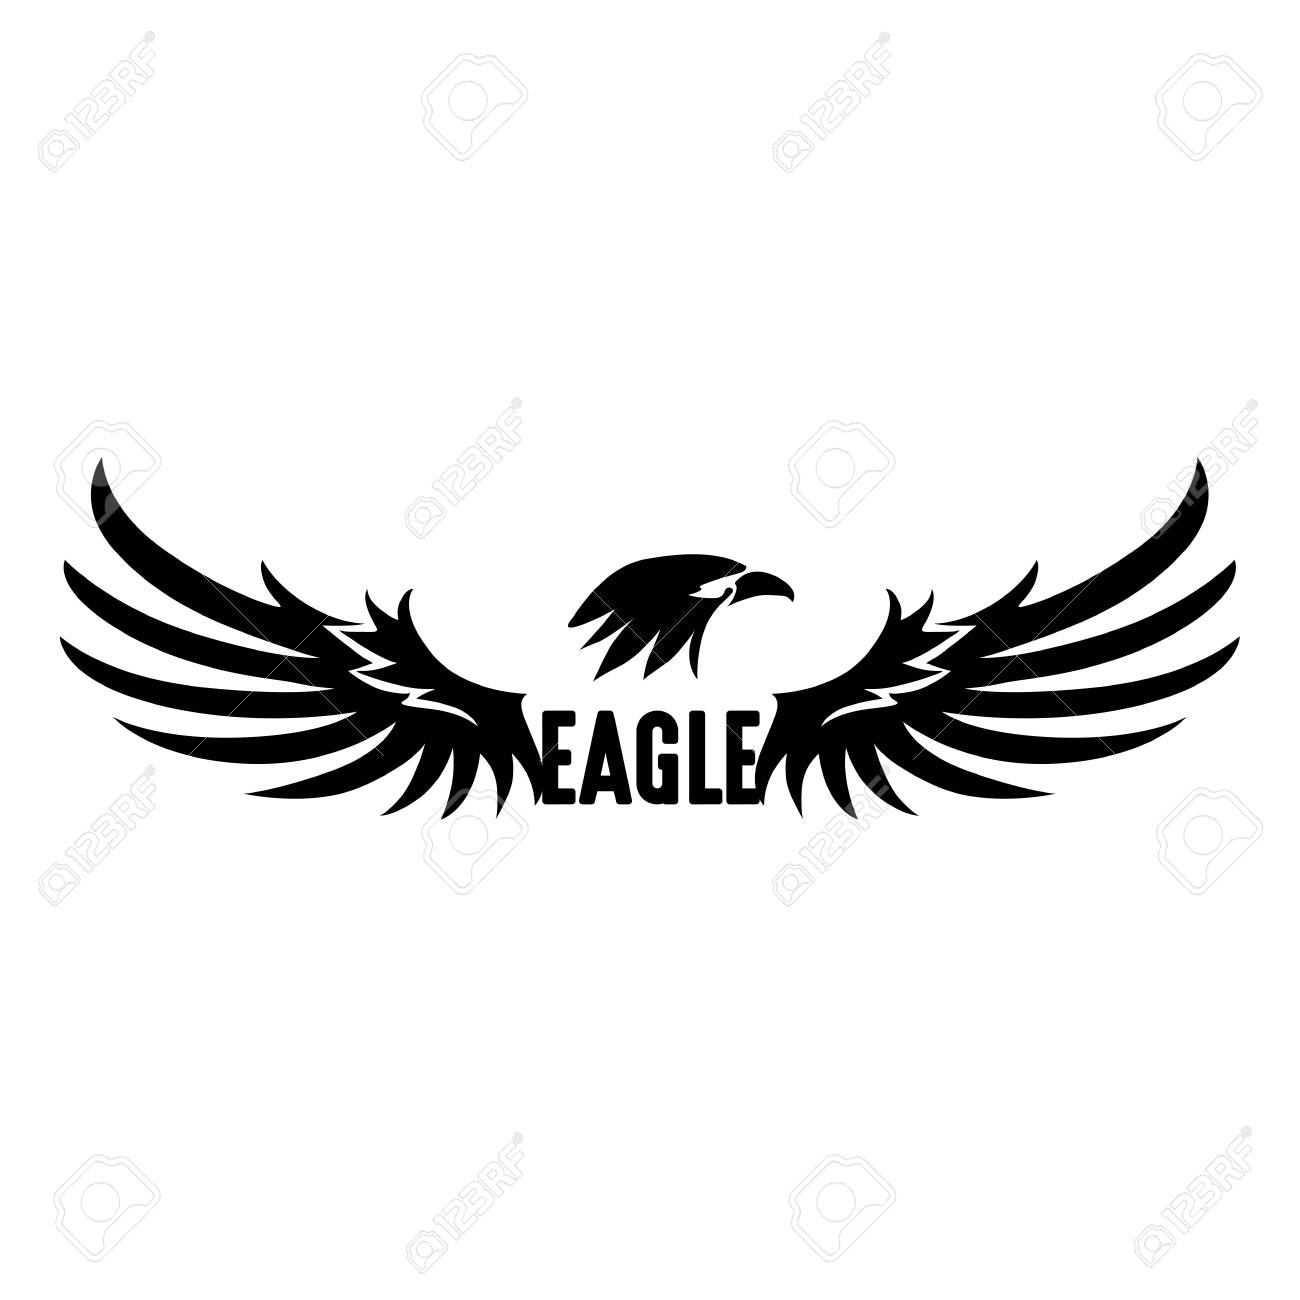 eagle logo vector free awesome graphic library